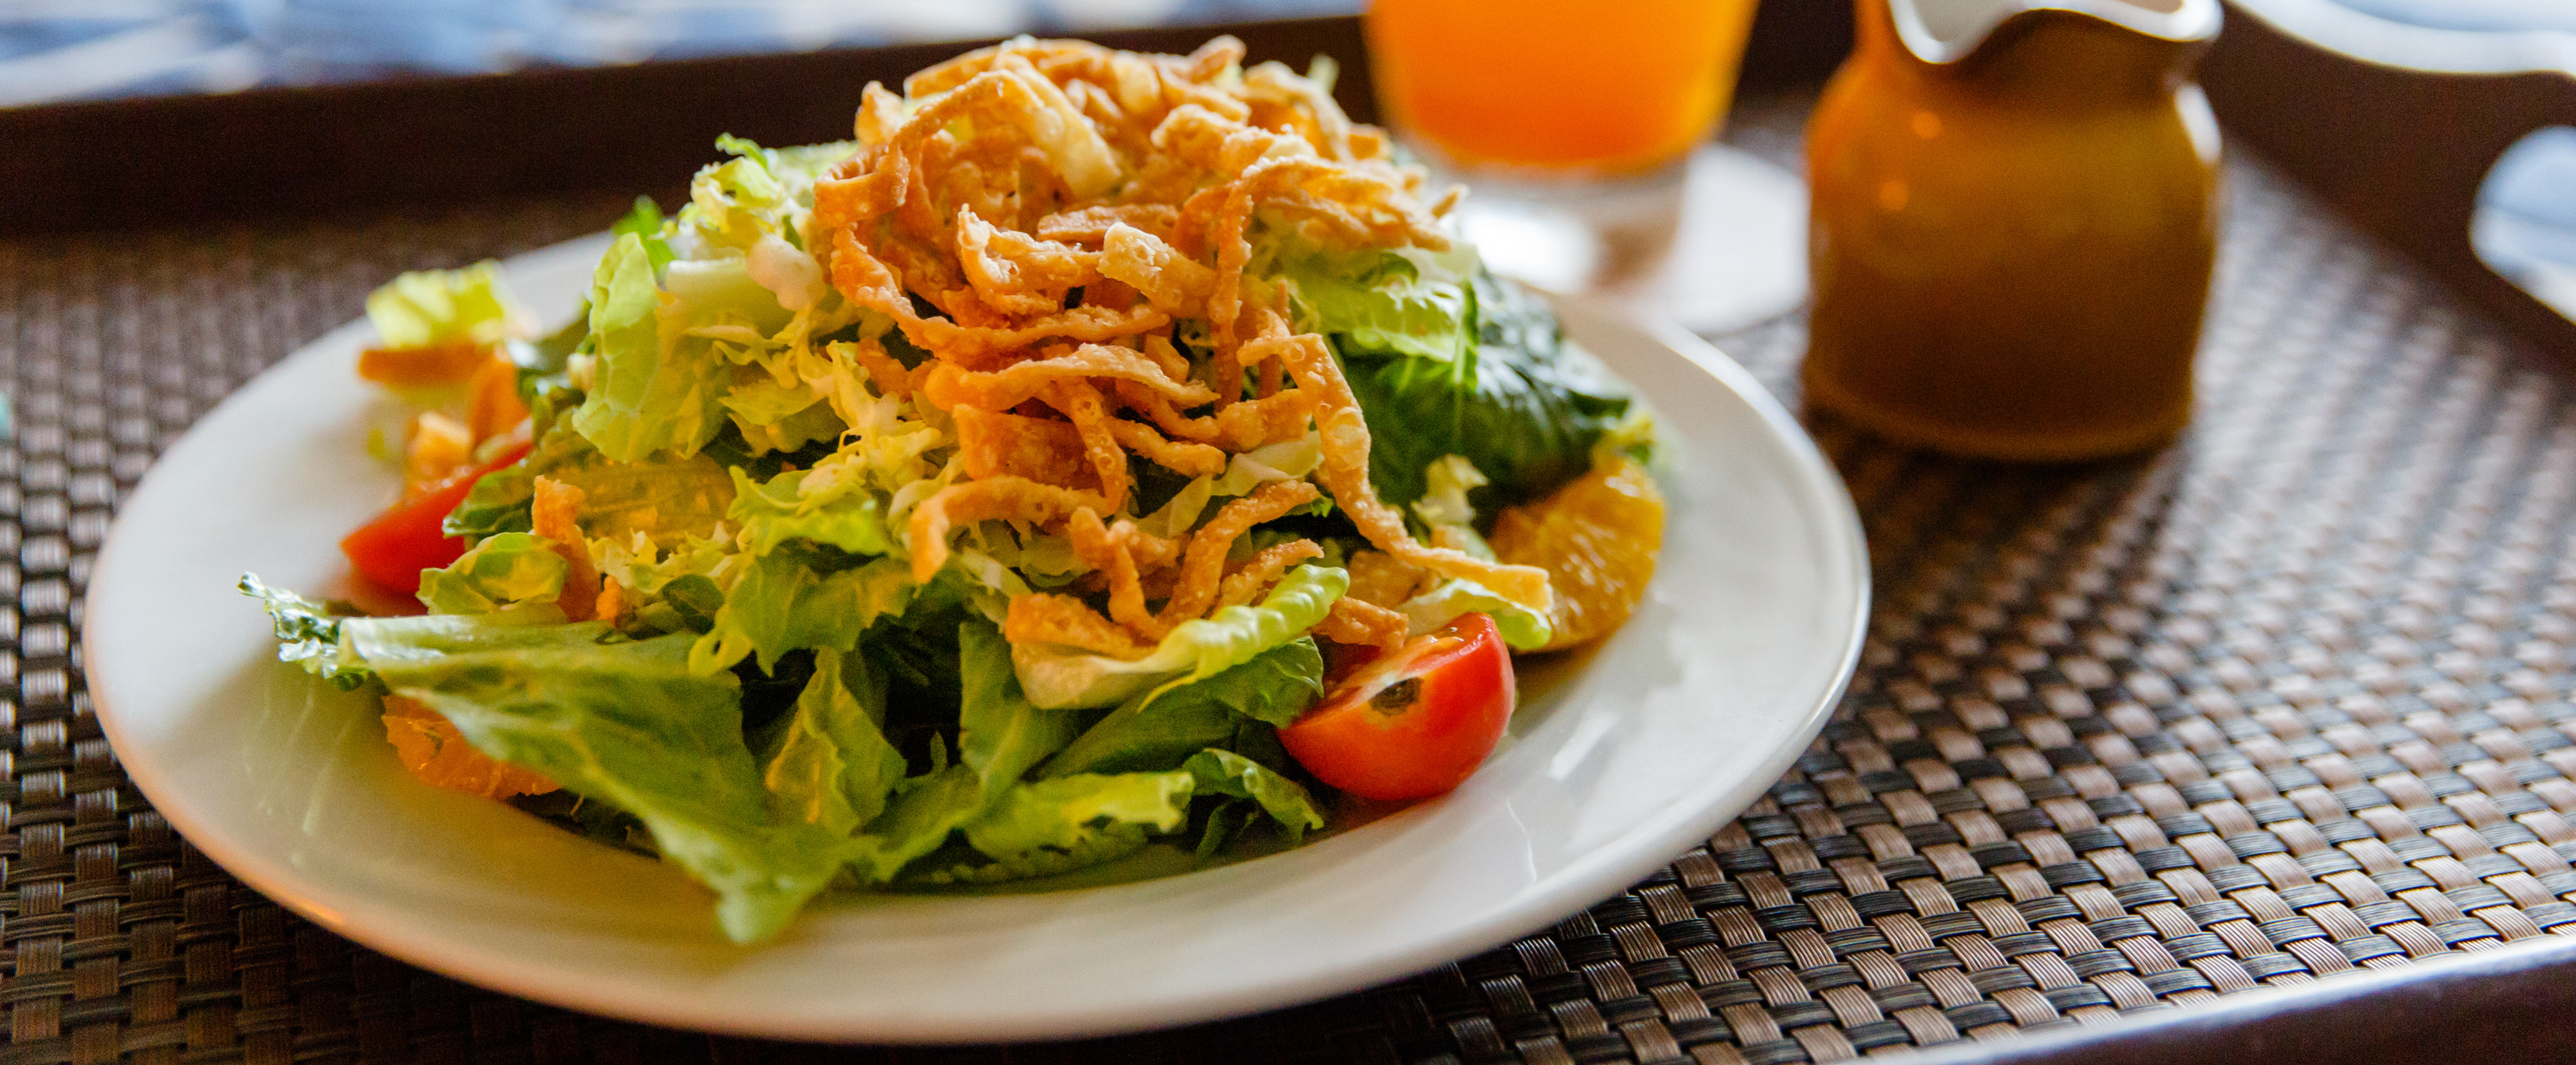 A plate of Asian-inspired salad topped with crispy noodles on a wicker serving tray with a beverage